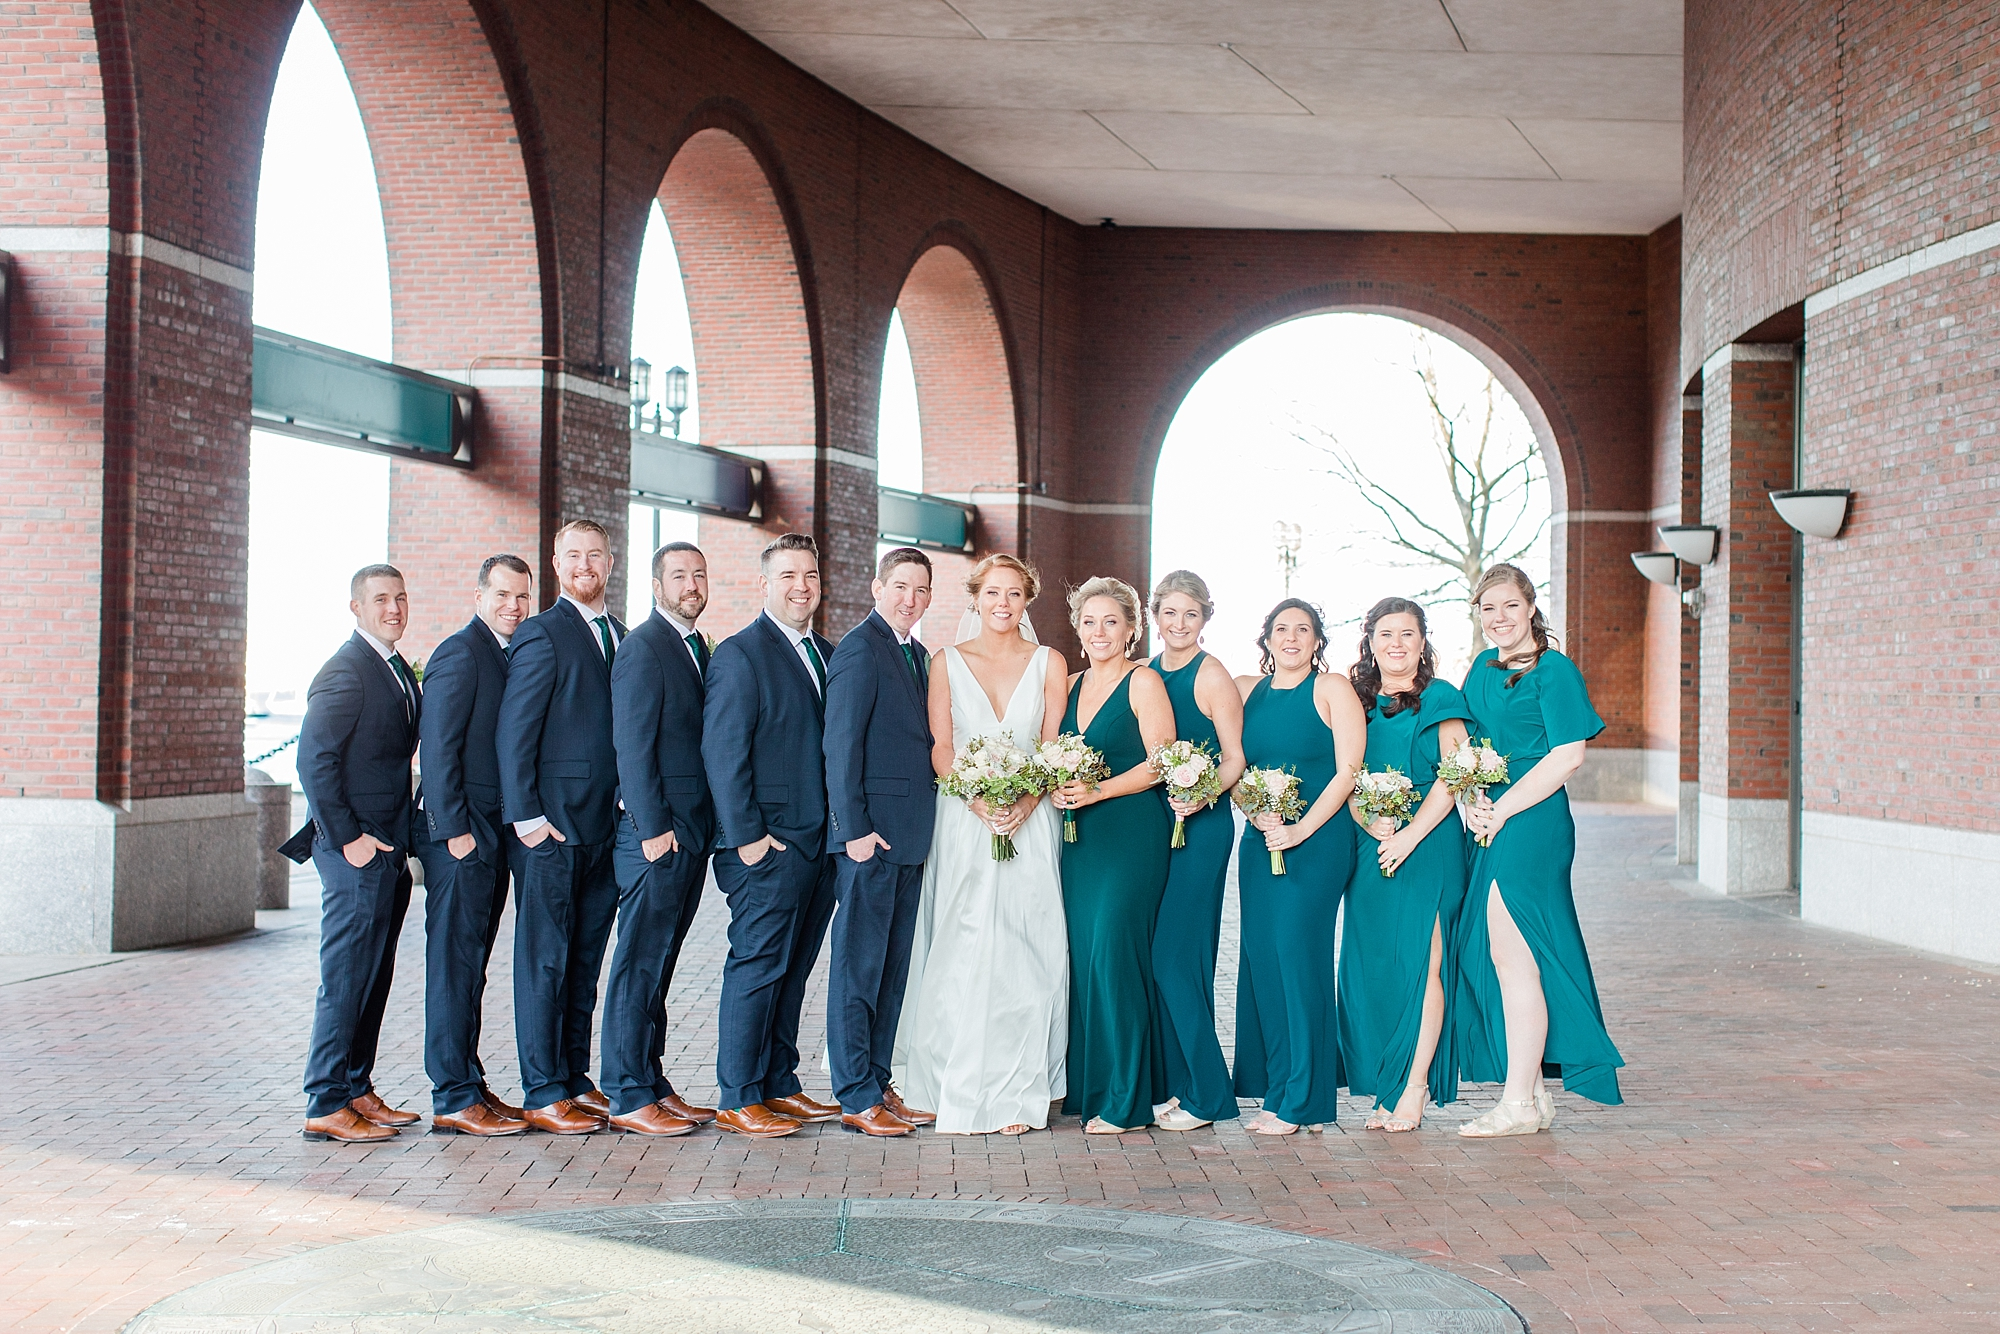 The wind picked up and a chill came in - typical March on the seaport! We were so impressed with this wedding party for sticking it out to get the shot!